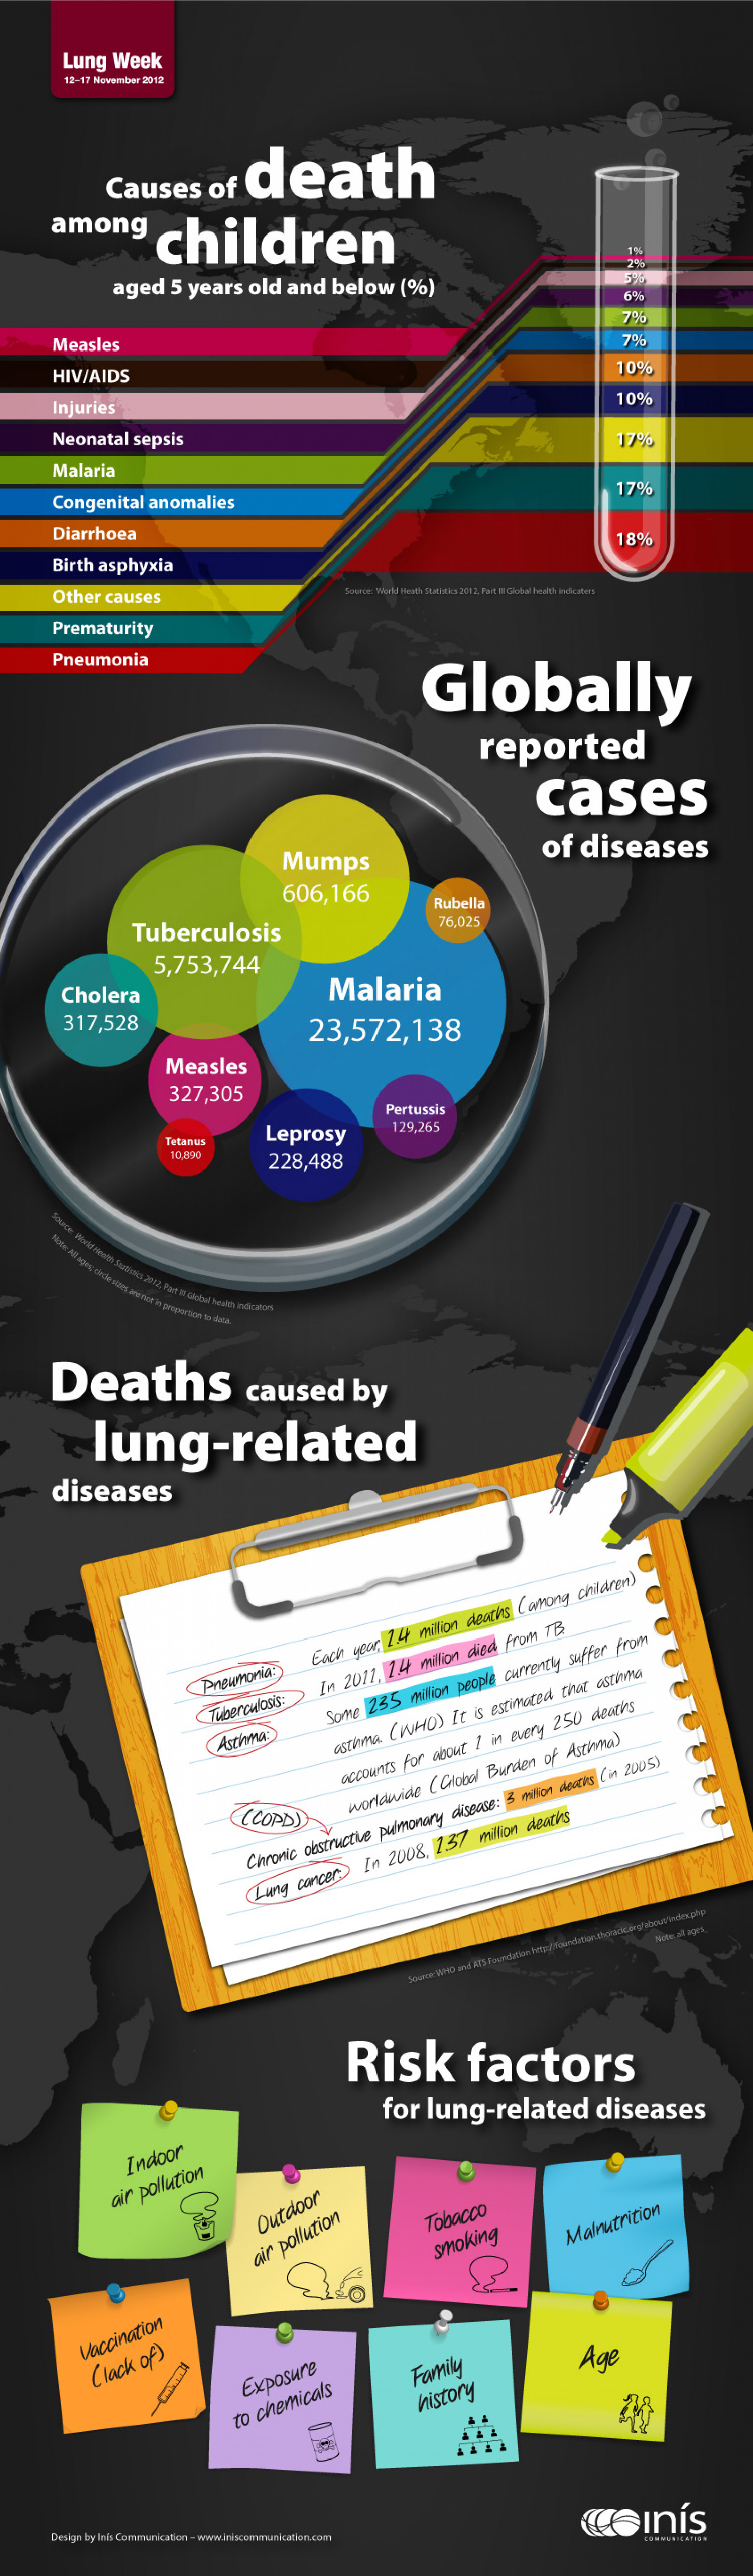 Lung Week Infographic